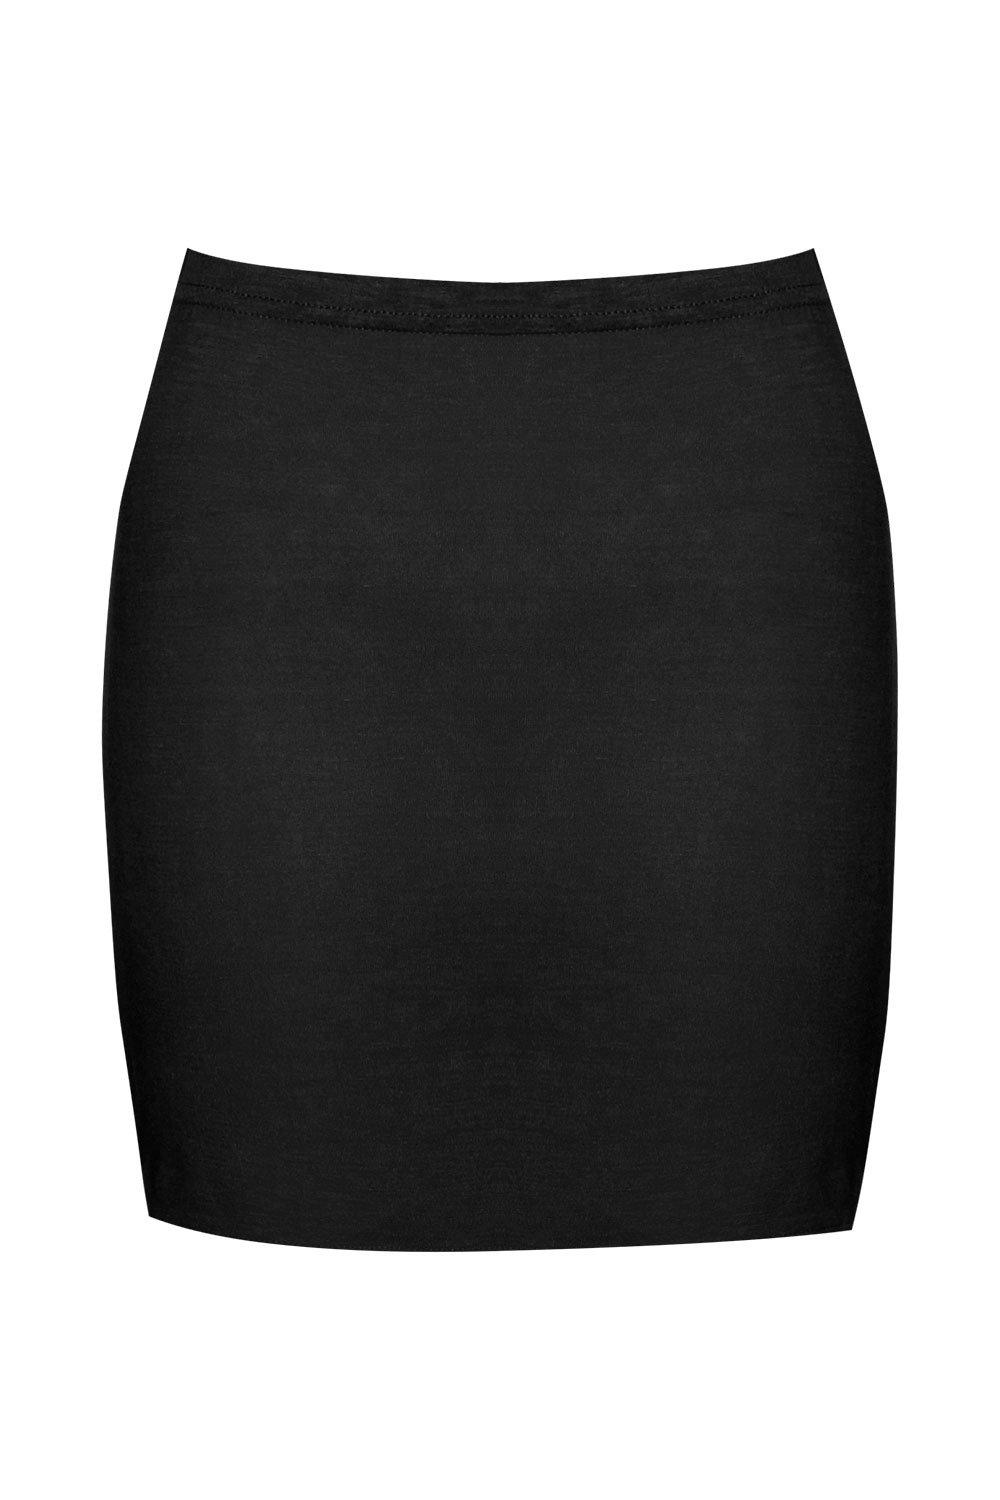 This season's skirts come in eclectic styles for different silhouettes and occasions. Straight cuts coexist with flowy pieces. ZW PREMIUM ROCKY MINI SKIRT IN SHADOW BLACK WITH STUDS. NEW. BELTED SKIRT WITH CONTRASTING TOPSTITCHING. BASIC PENCIL SKIRT. PLAID MINI SKIRT. COLORS. RIBBED SKIRT WITH VENT. COLORS. RIBBED SKIRT WITH VENT.